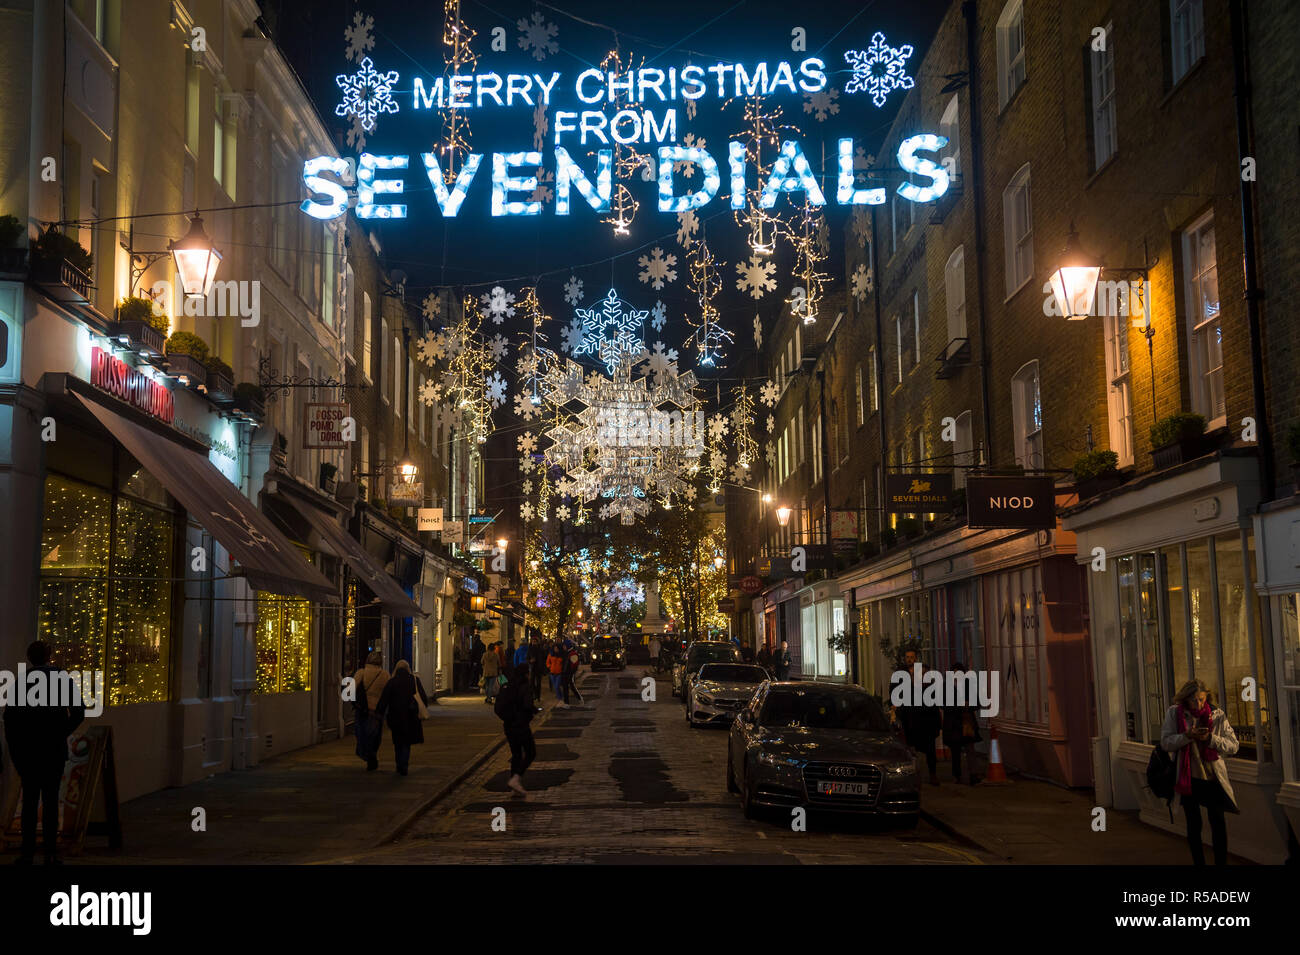 LONDON - NOVEMBER 26, 2018: Merry Christmas from Seven Dials message hangs with sparkling holiday lights in the popular West End neighbourhood. - Stock Image